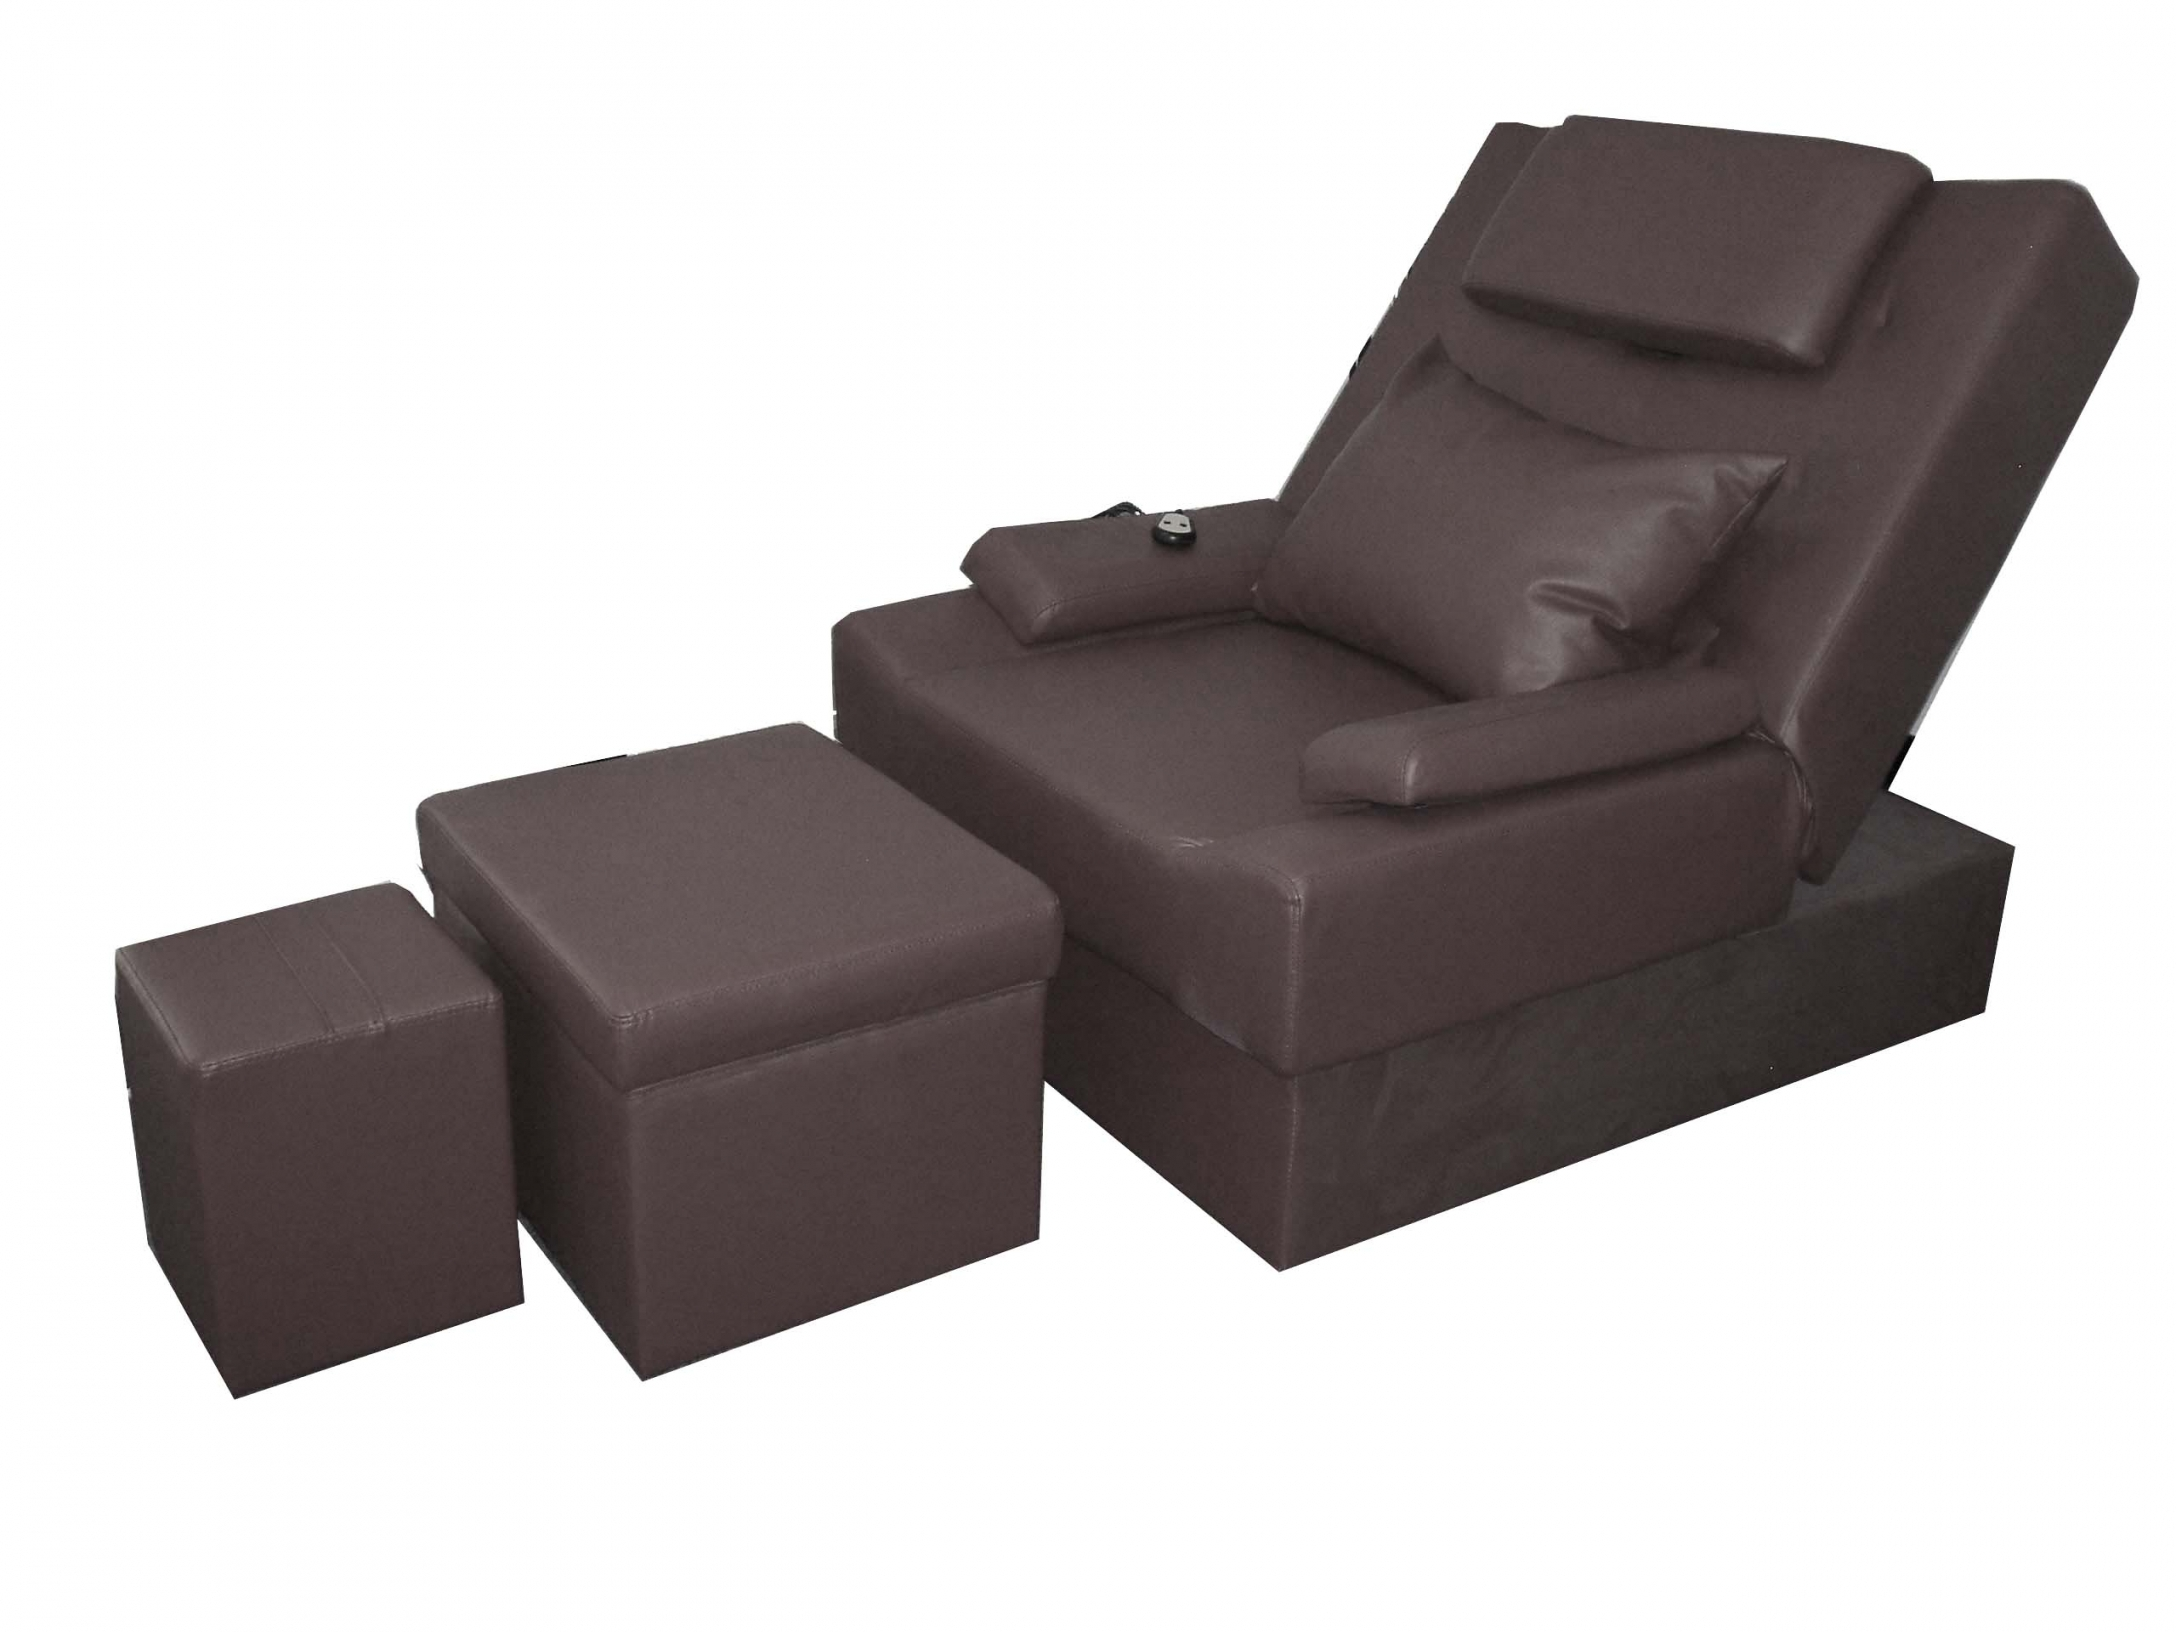 Foot Massage Chairs Throughout Foot Massage Sofa Chairs (Image 4 of 15)